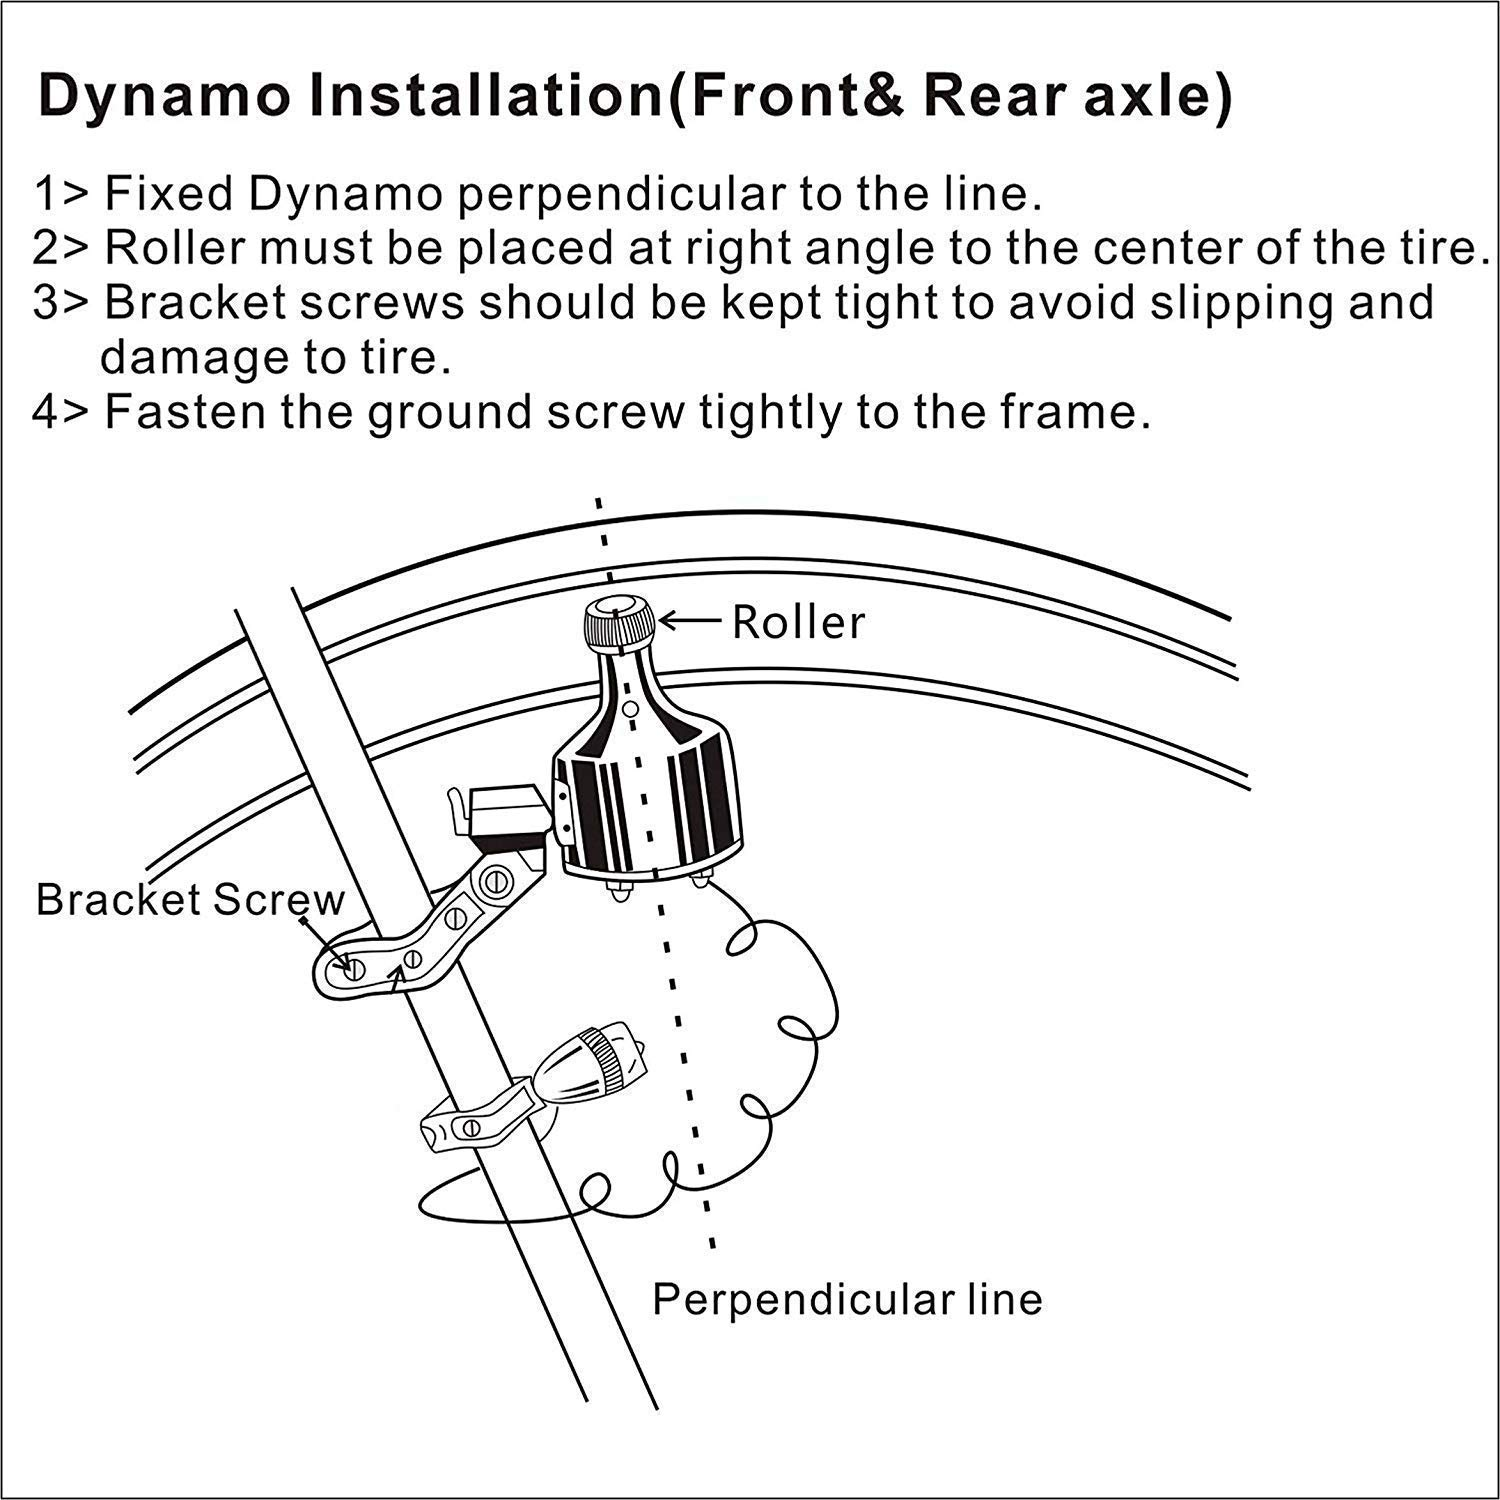 Dynamo Wiring Diagram from images-na.ssl-images-amazon.com